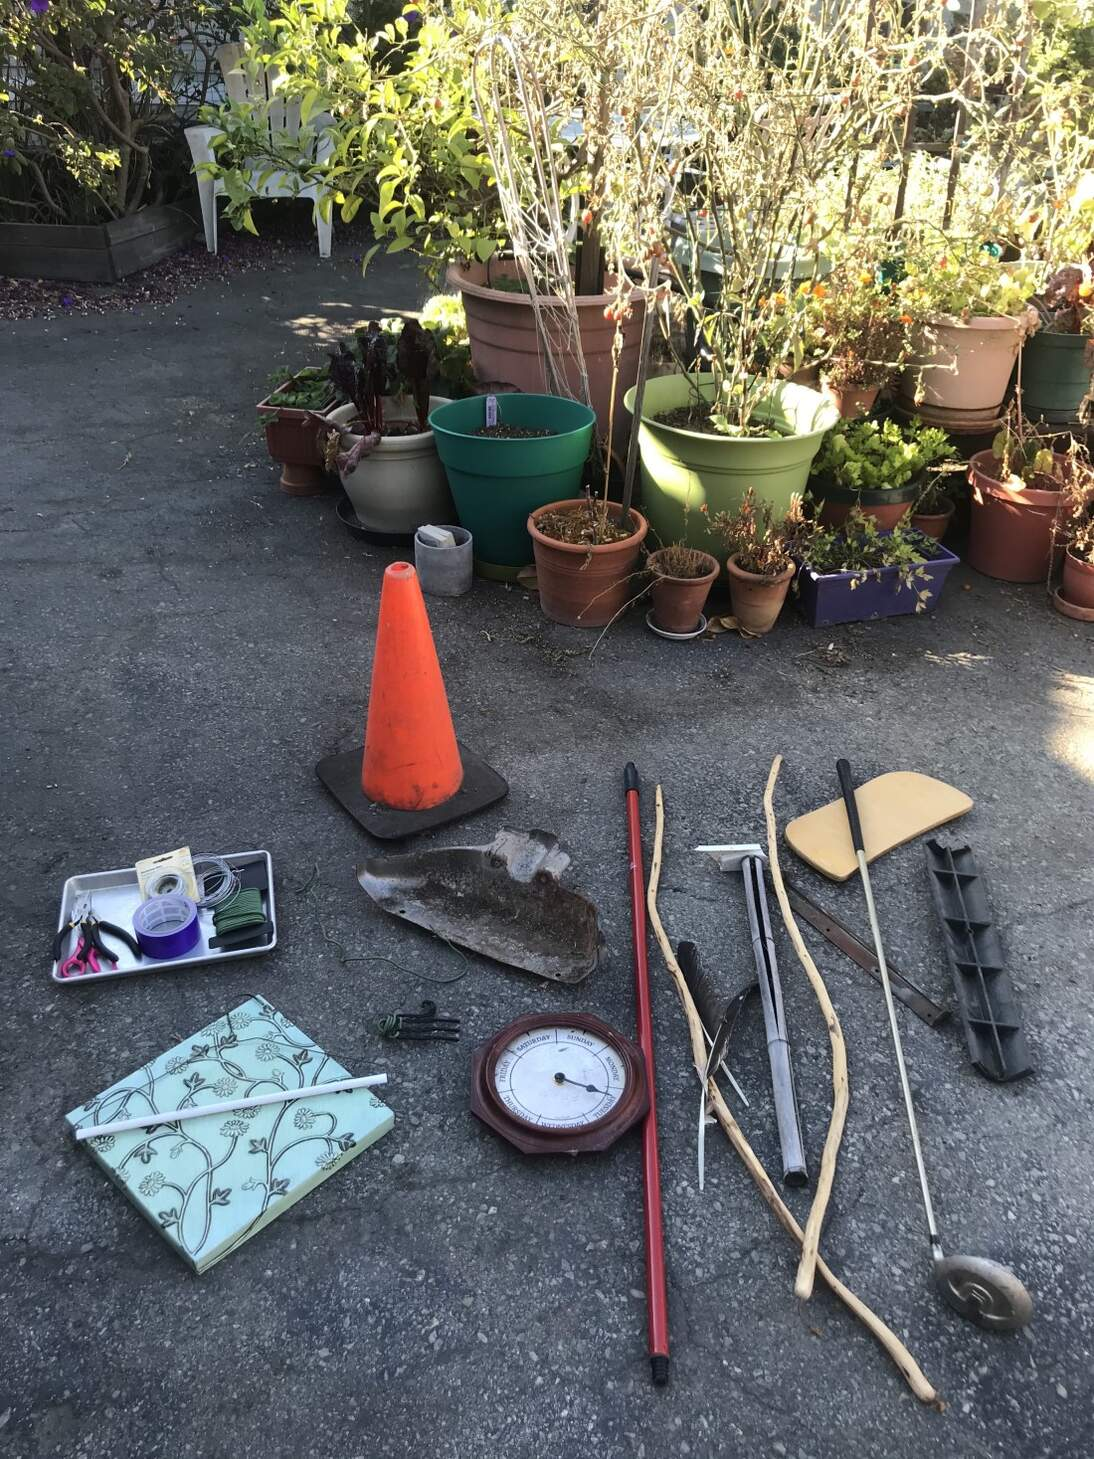 de Youngsters Studio: Yard Show Art Making Inspired by Joe Minter